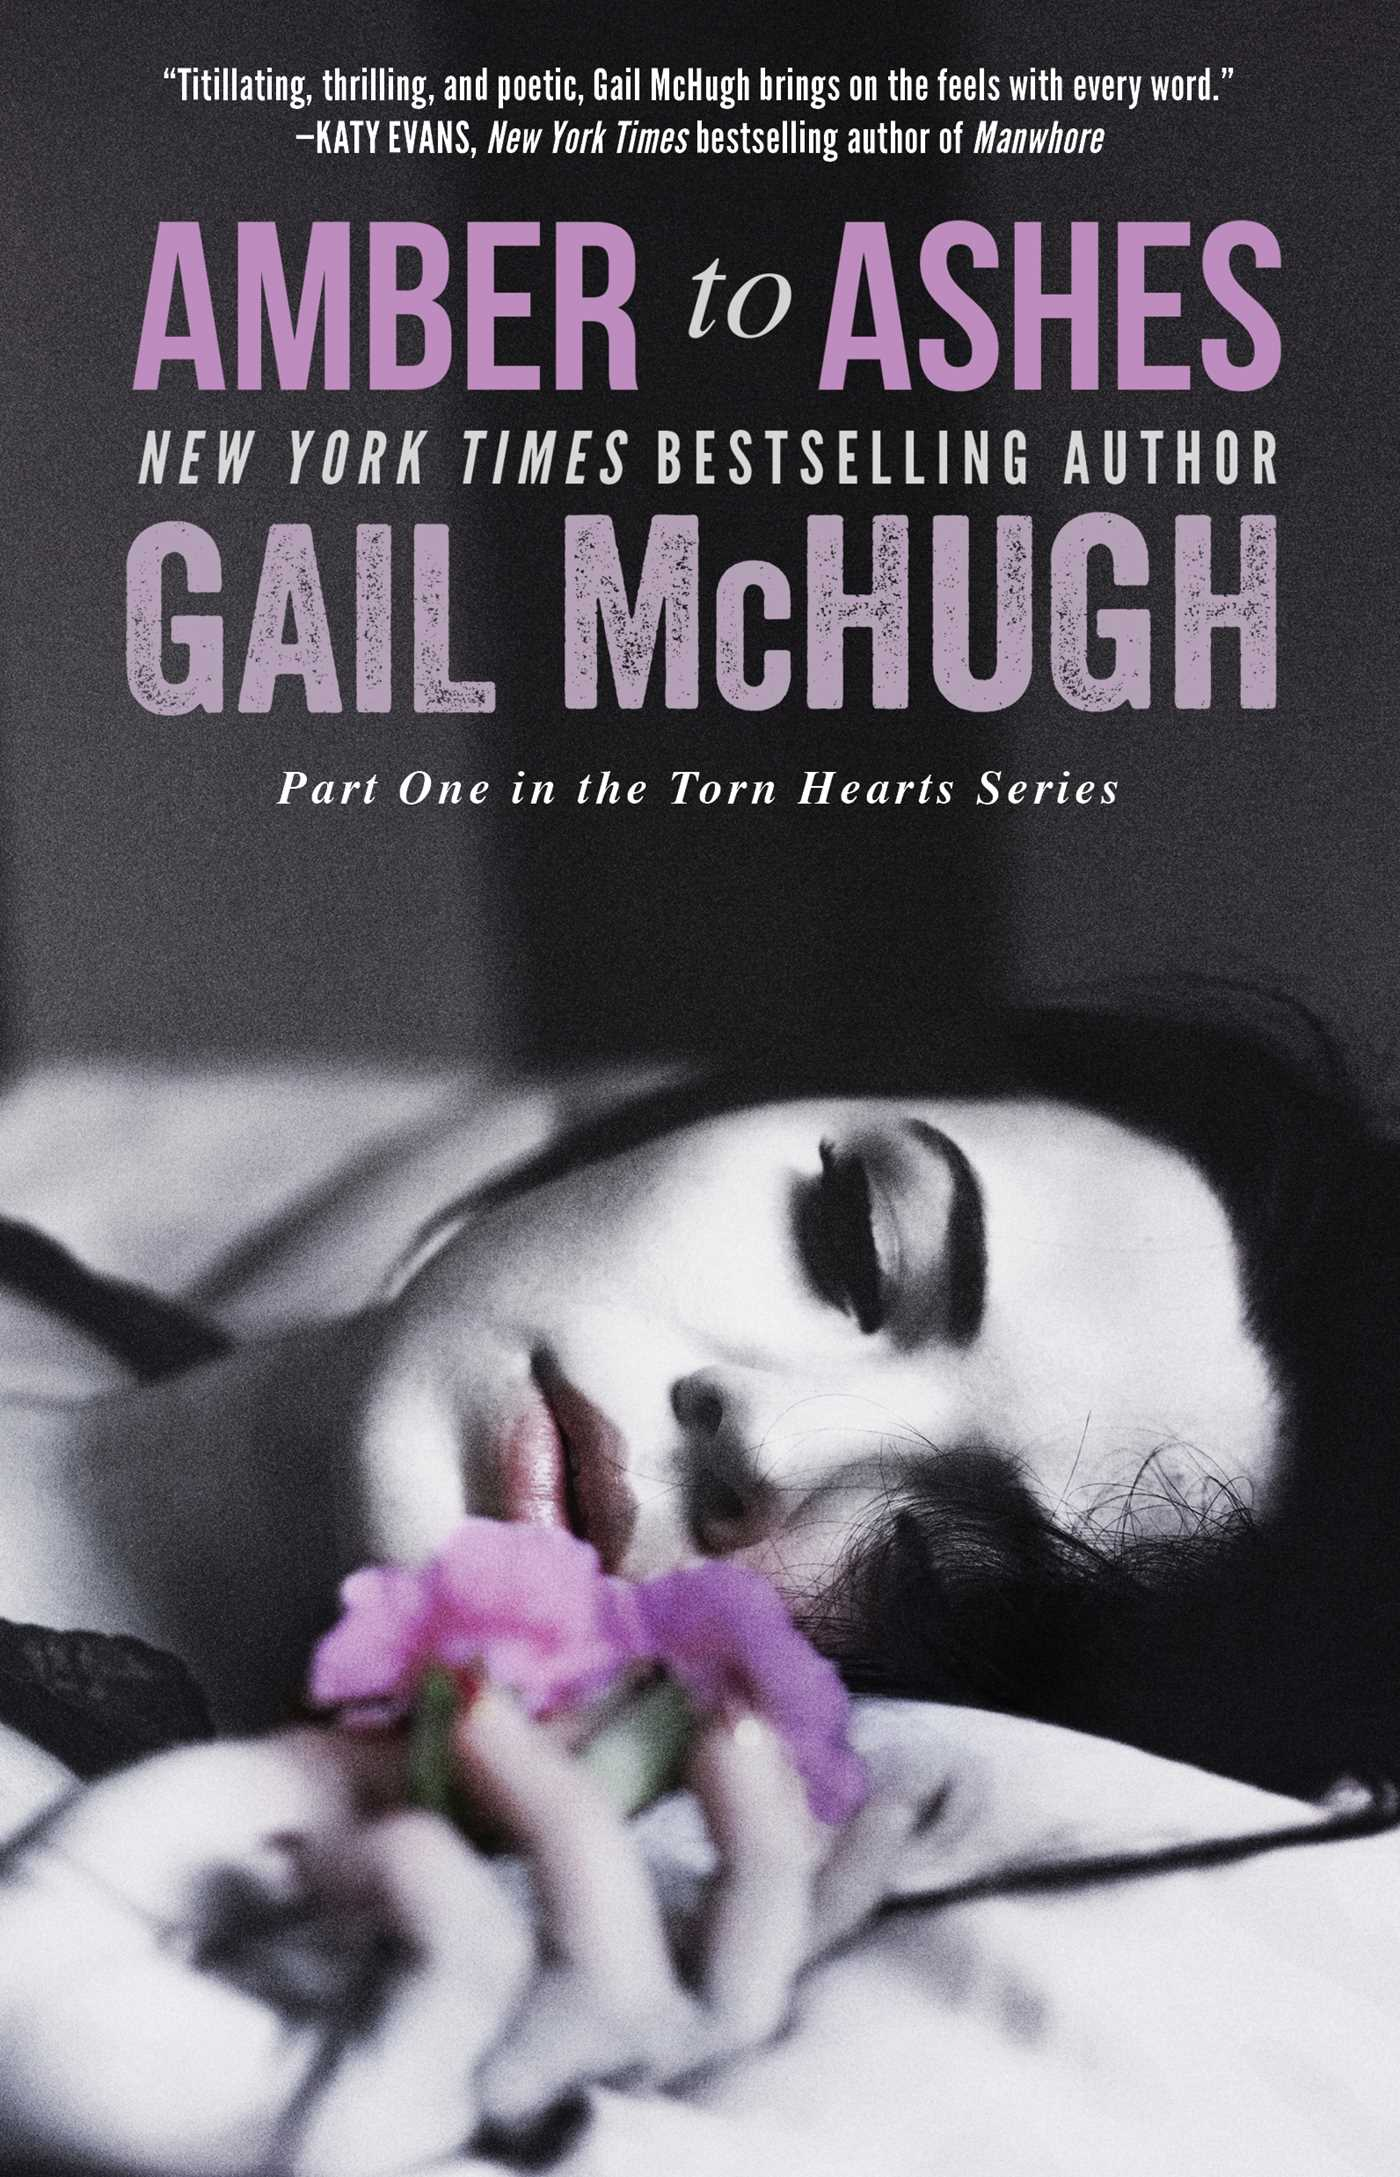 Mchugh epub gail download collide free